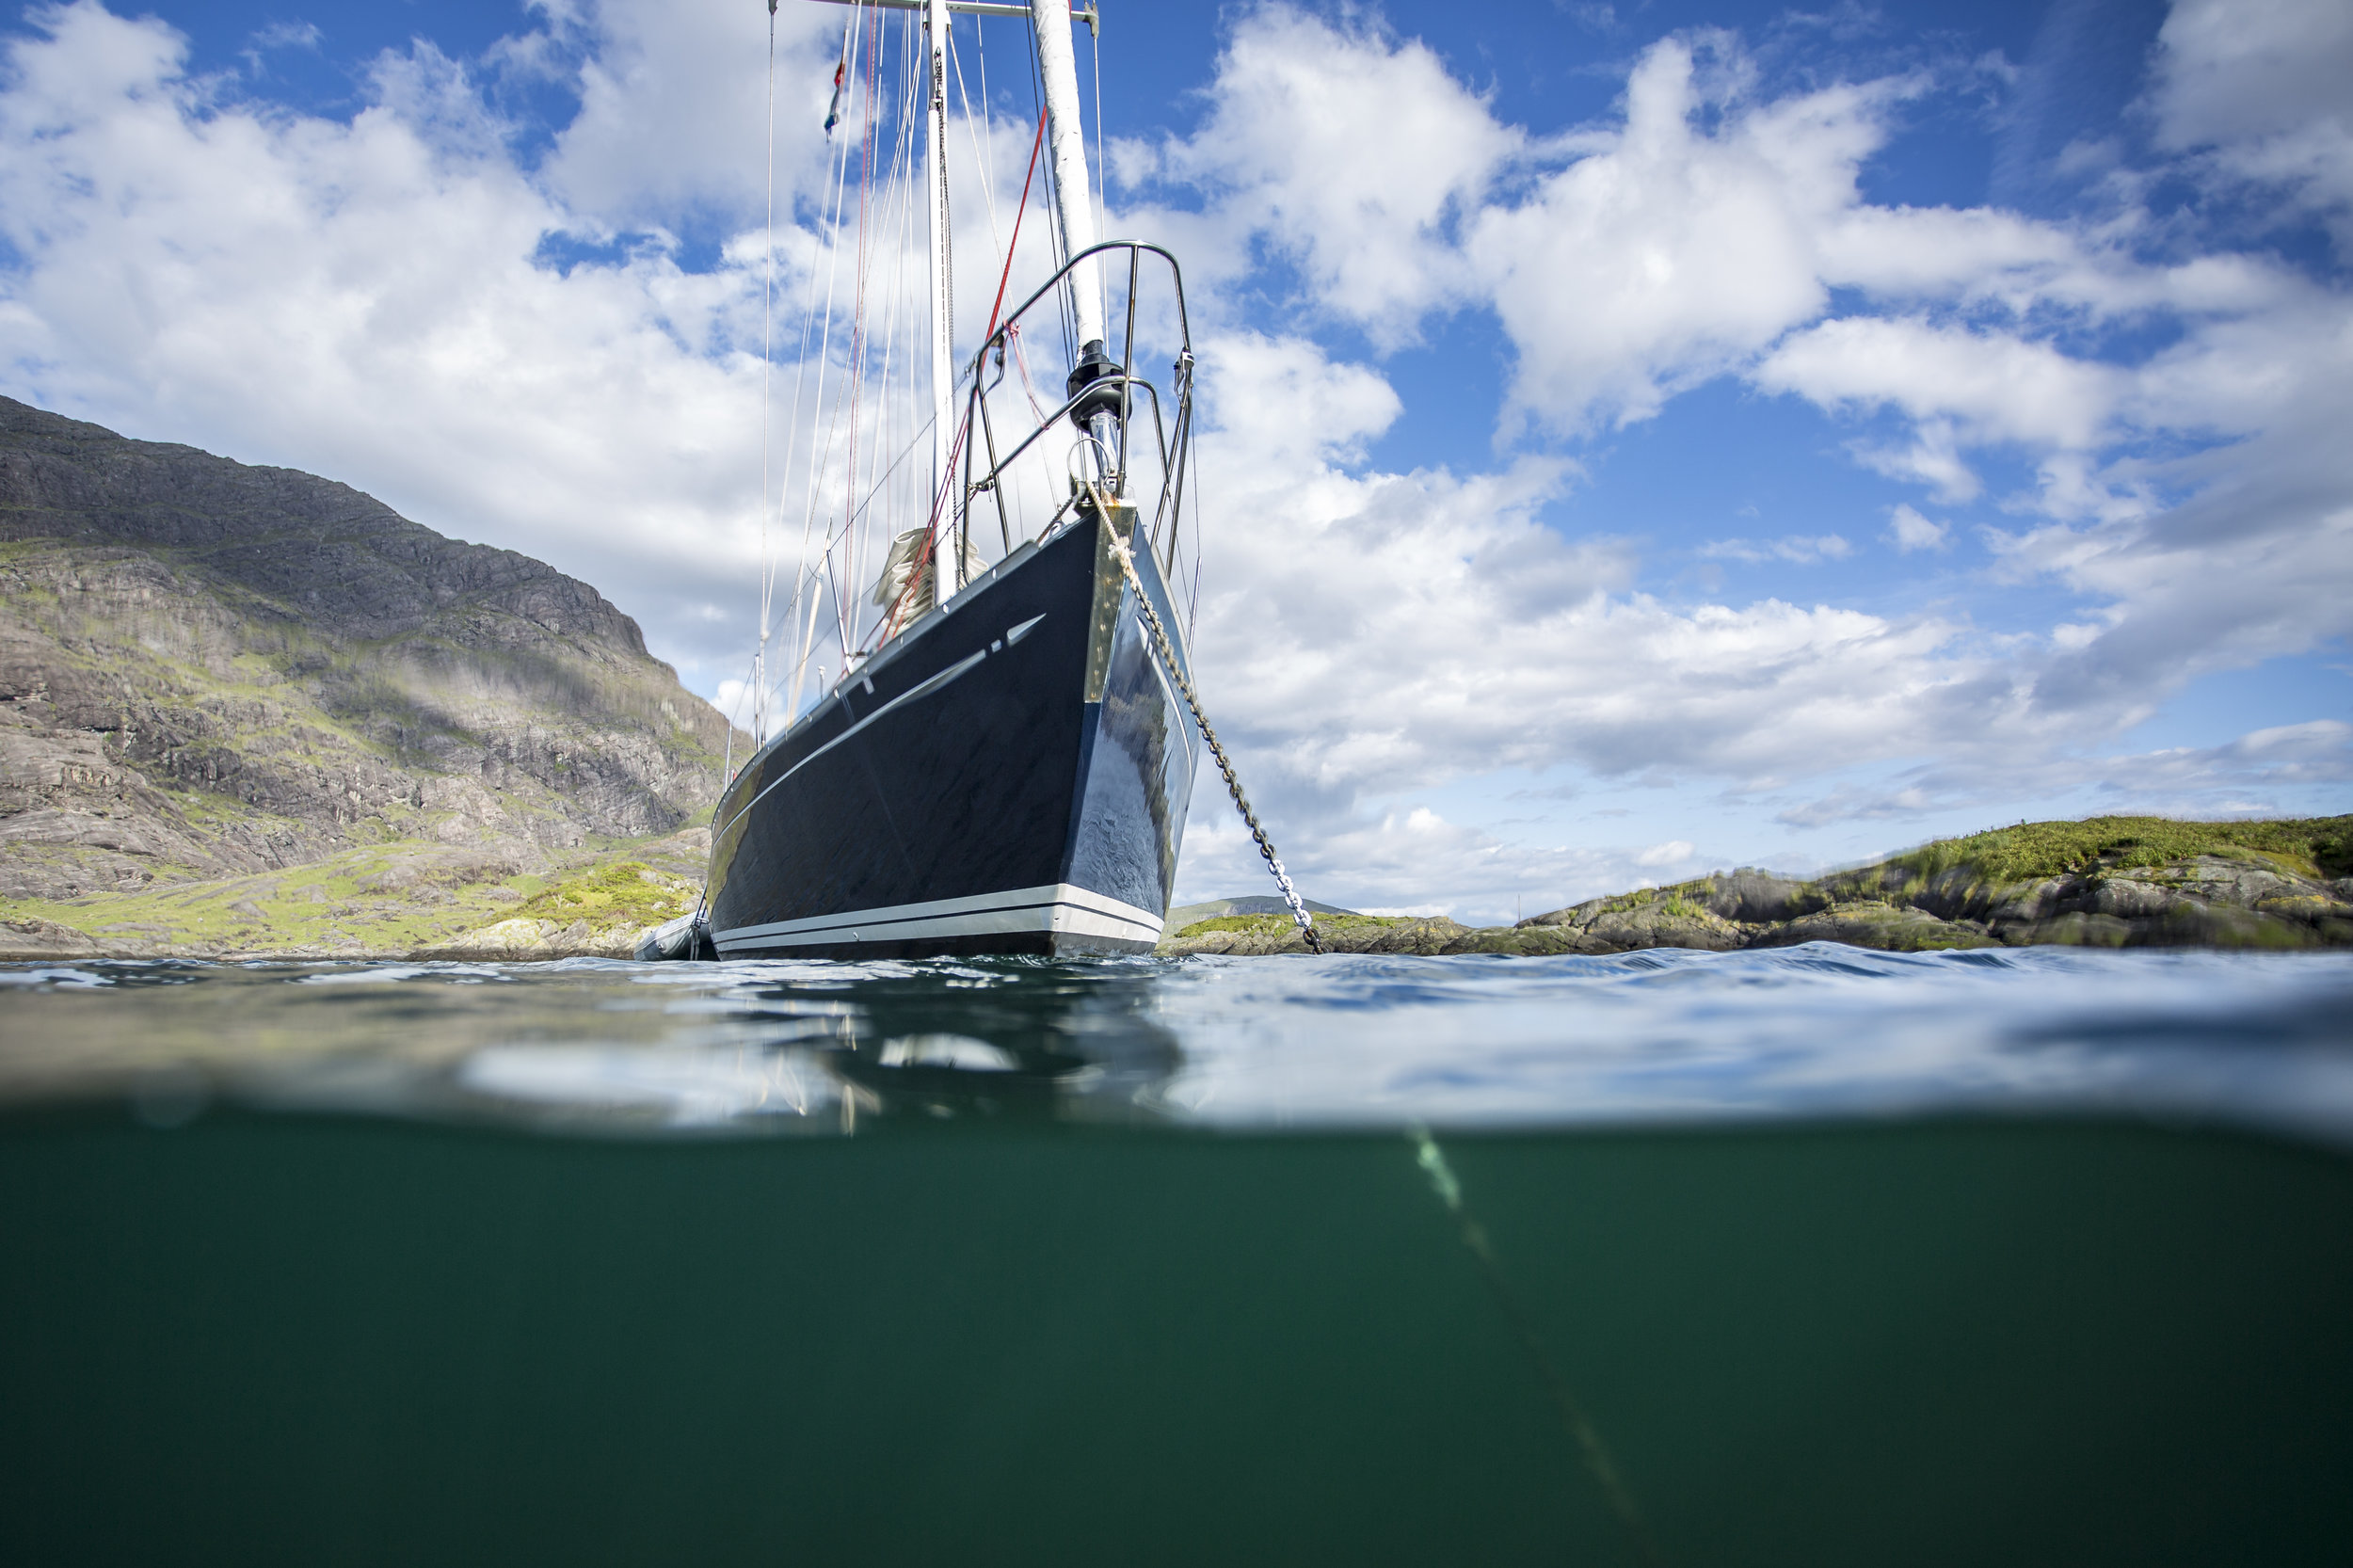 Isbjorn anchored in Loch Scavaig, Isle of Skye, Scotland.